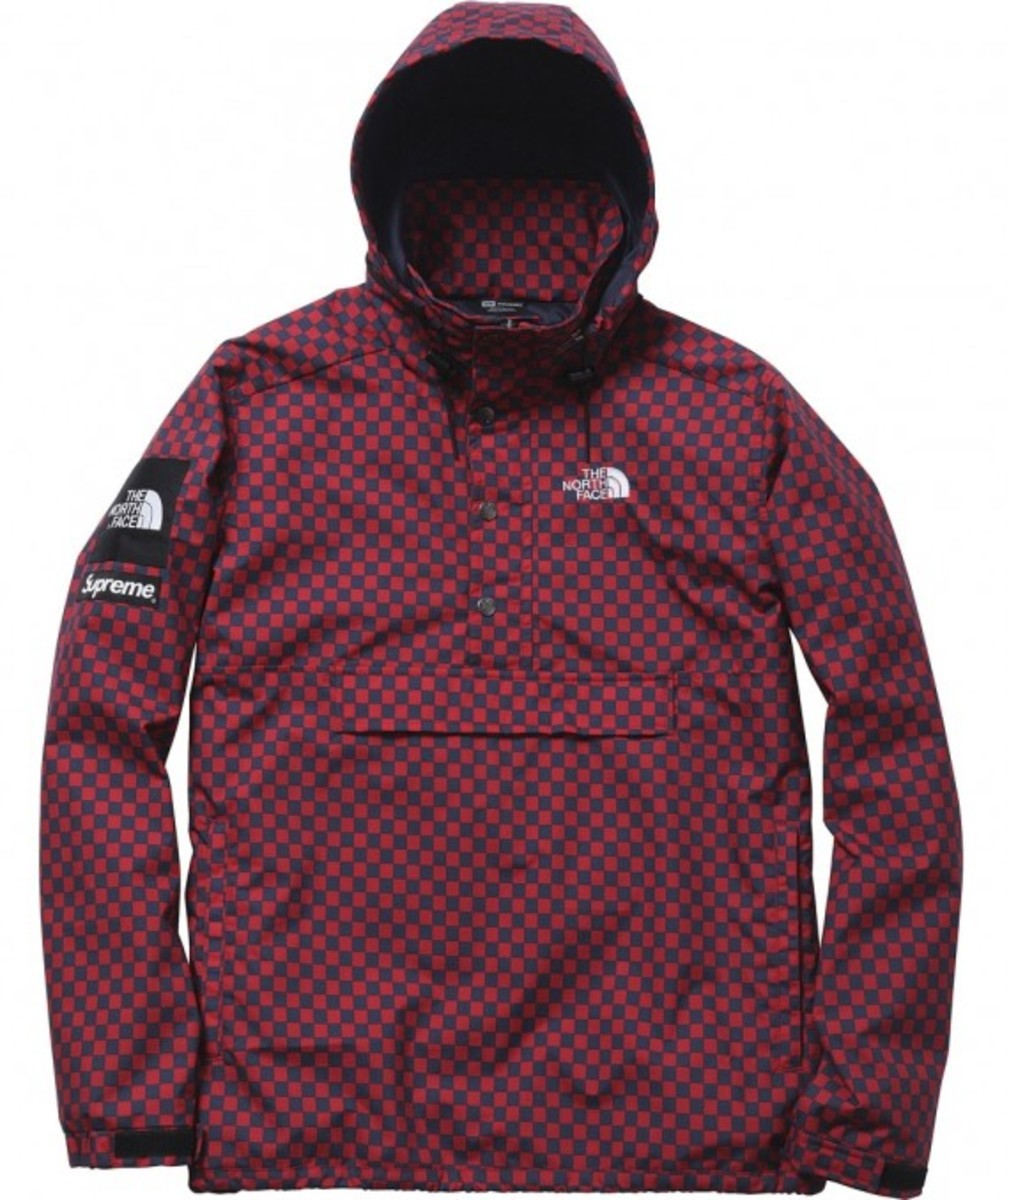 the-north-face-supreme-spring-2011-collection-02